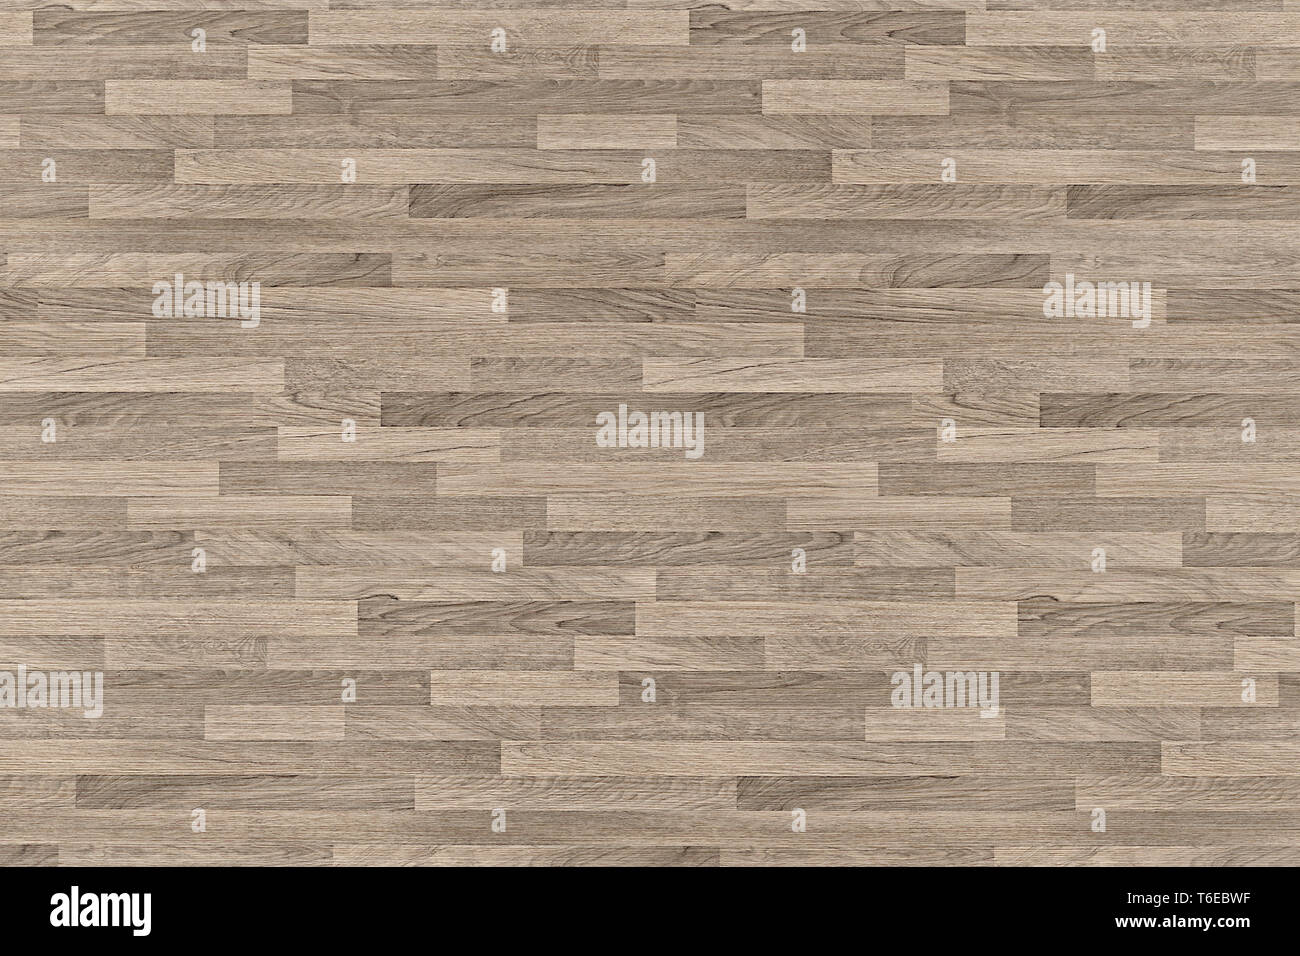 Parquet Flooring Texture High Resolution Stock Photography And Images Alamy